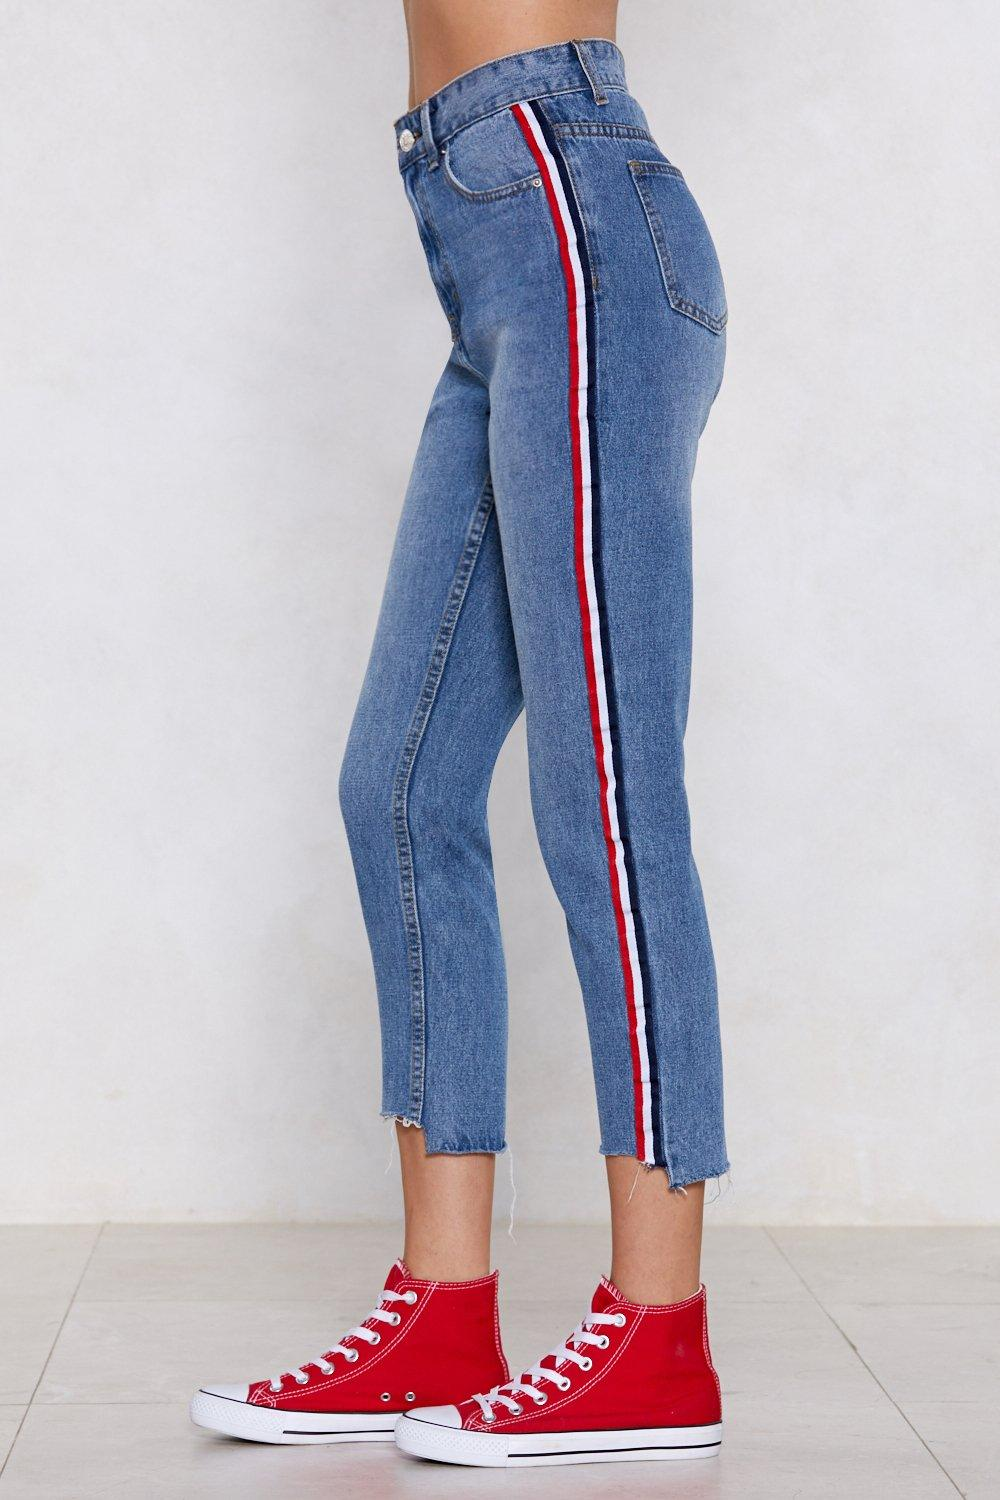 2e233e517b53b7 You're Absolutely Stripe High-Waisted Jeans | Shop Clothes at Nasty Gal!